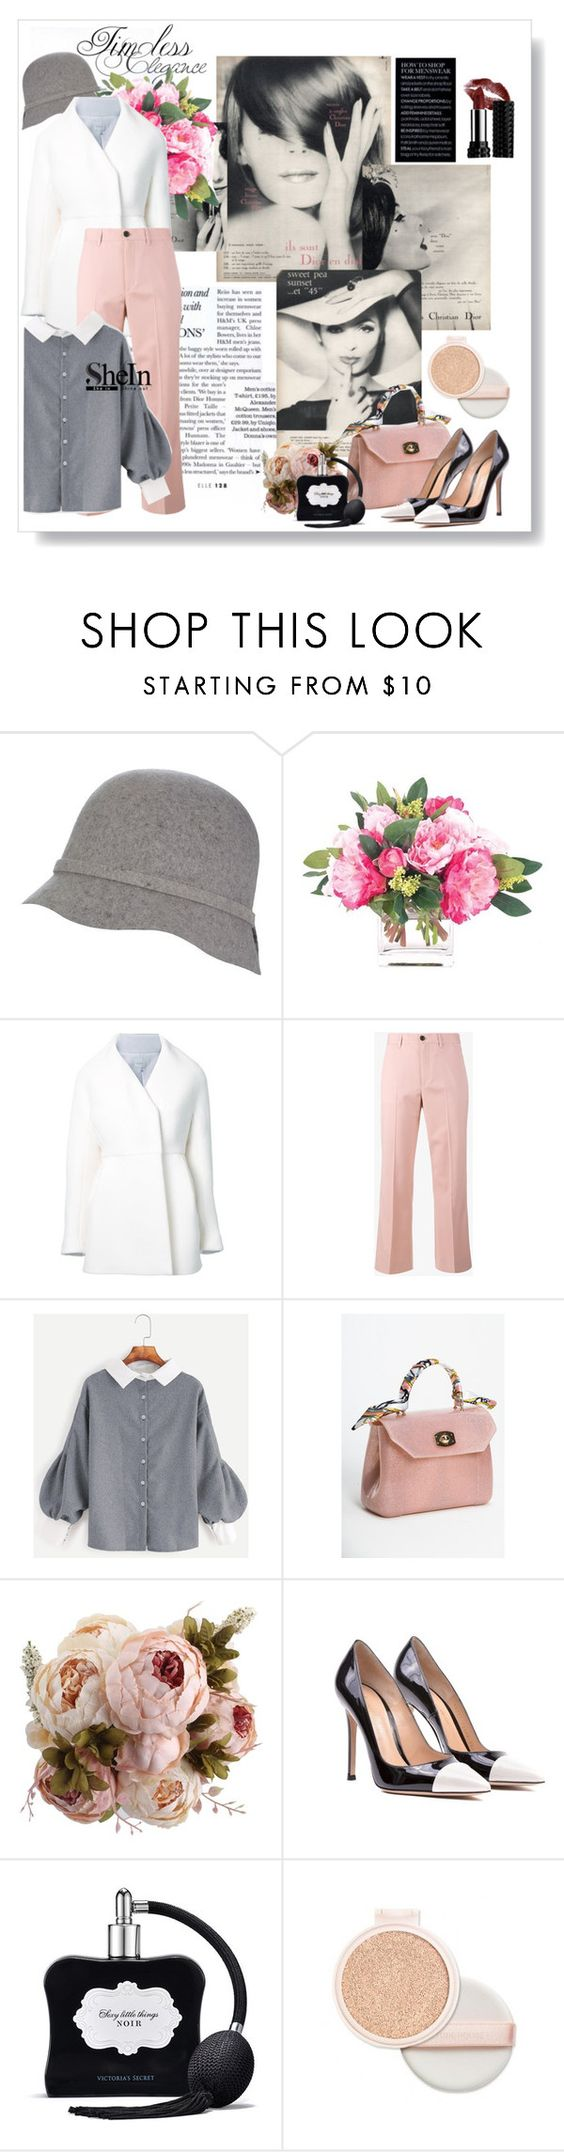 """Timeless Elegance with SheIn"" by metropulse ❤ liked on Polyvore featuring NDI, Delpozo, Miu Miu, Gianvito Rossi and Victoria's Secret"